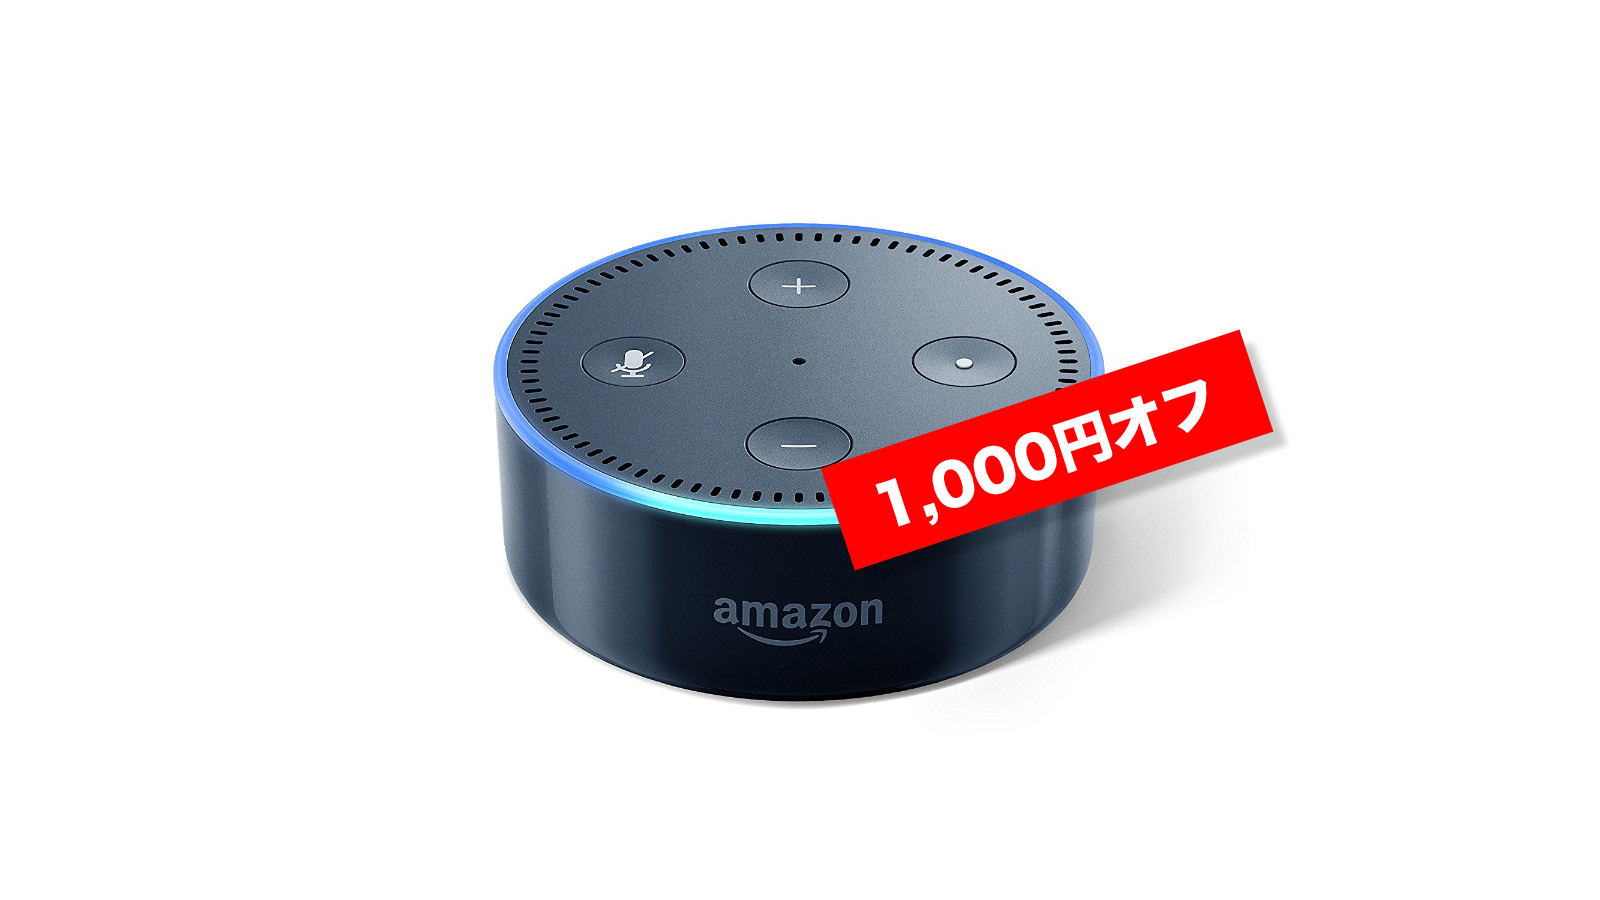 Amazon echo dot 1000yen off